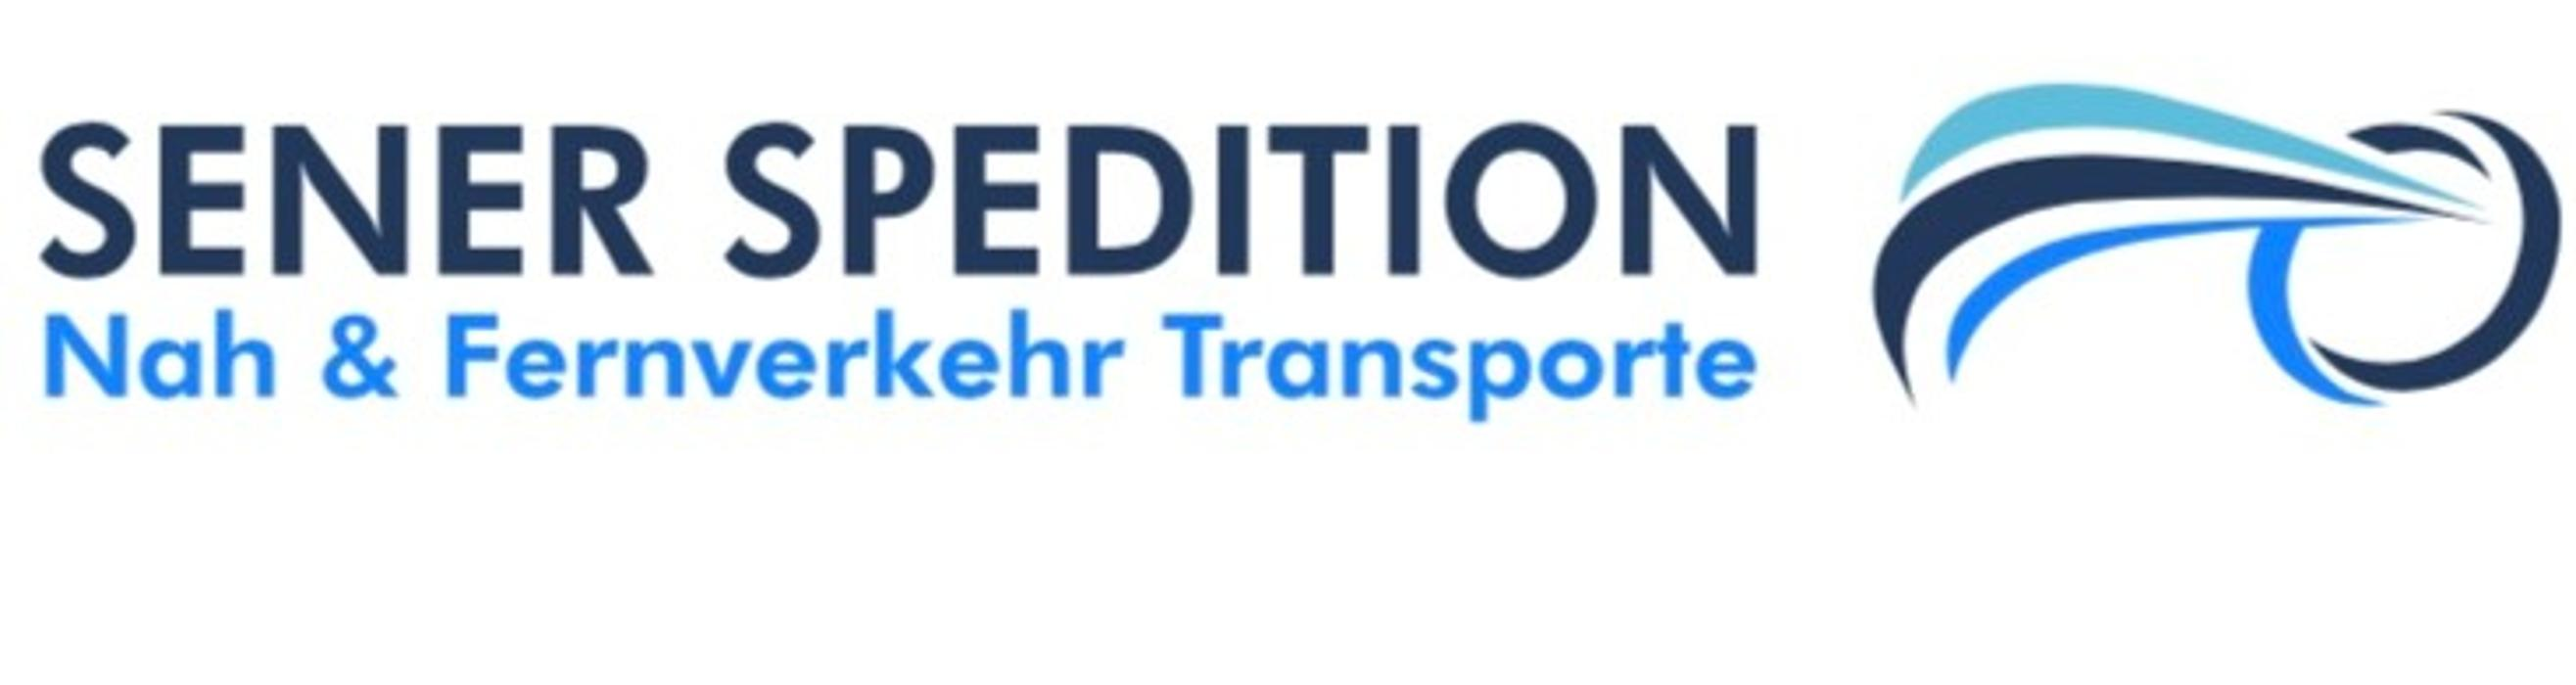 Bild zu Sener Spedition, Logistik und Gütertransport GmbH in Germering